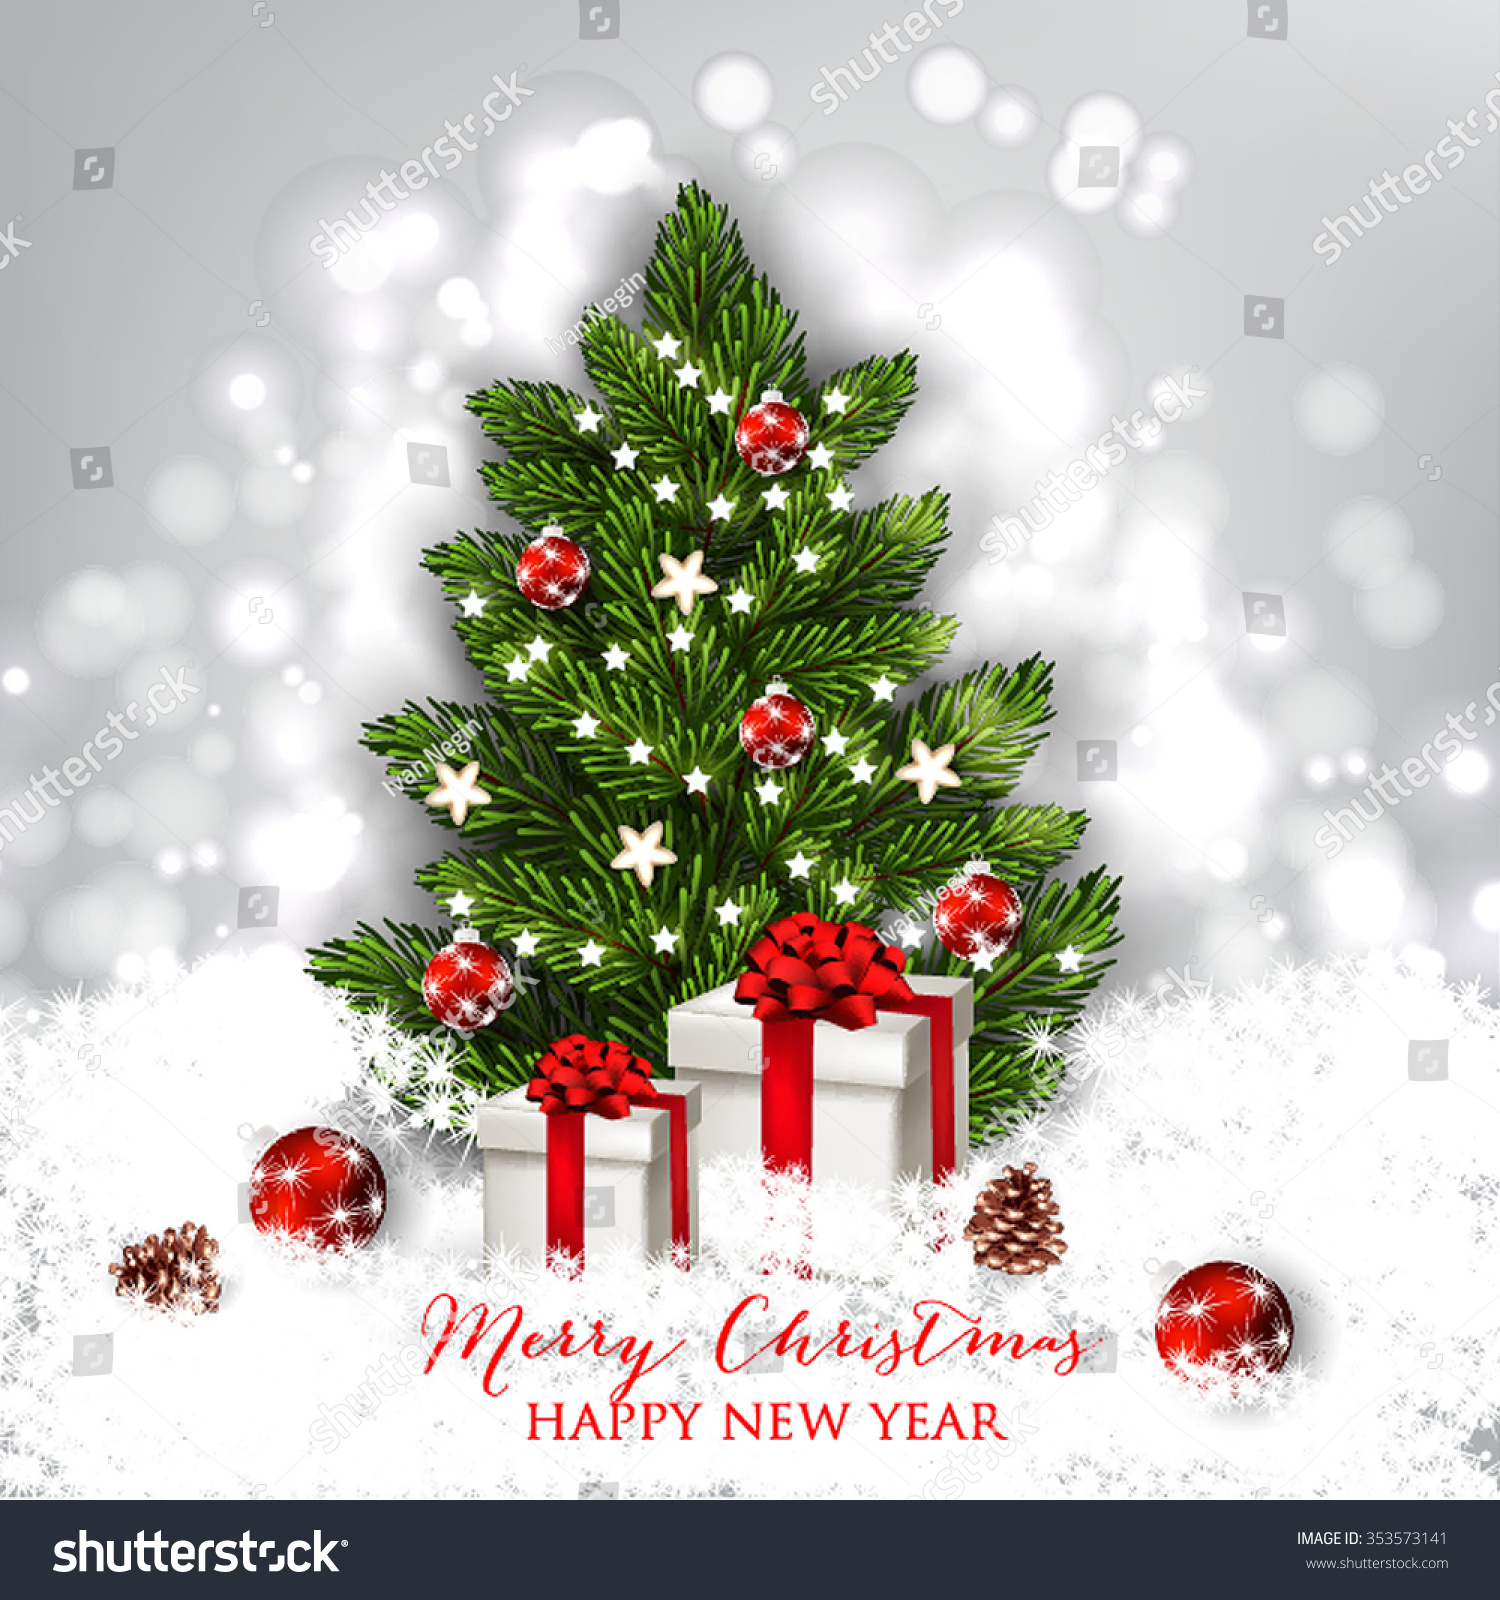 merry christmas and happy new year card with gift box and christmas tree christmas party